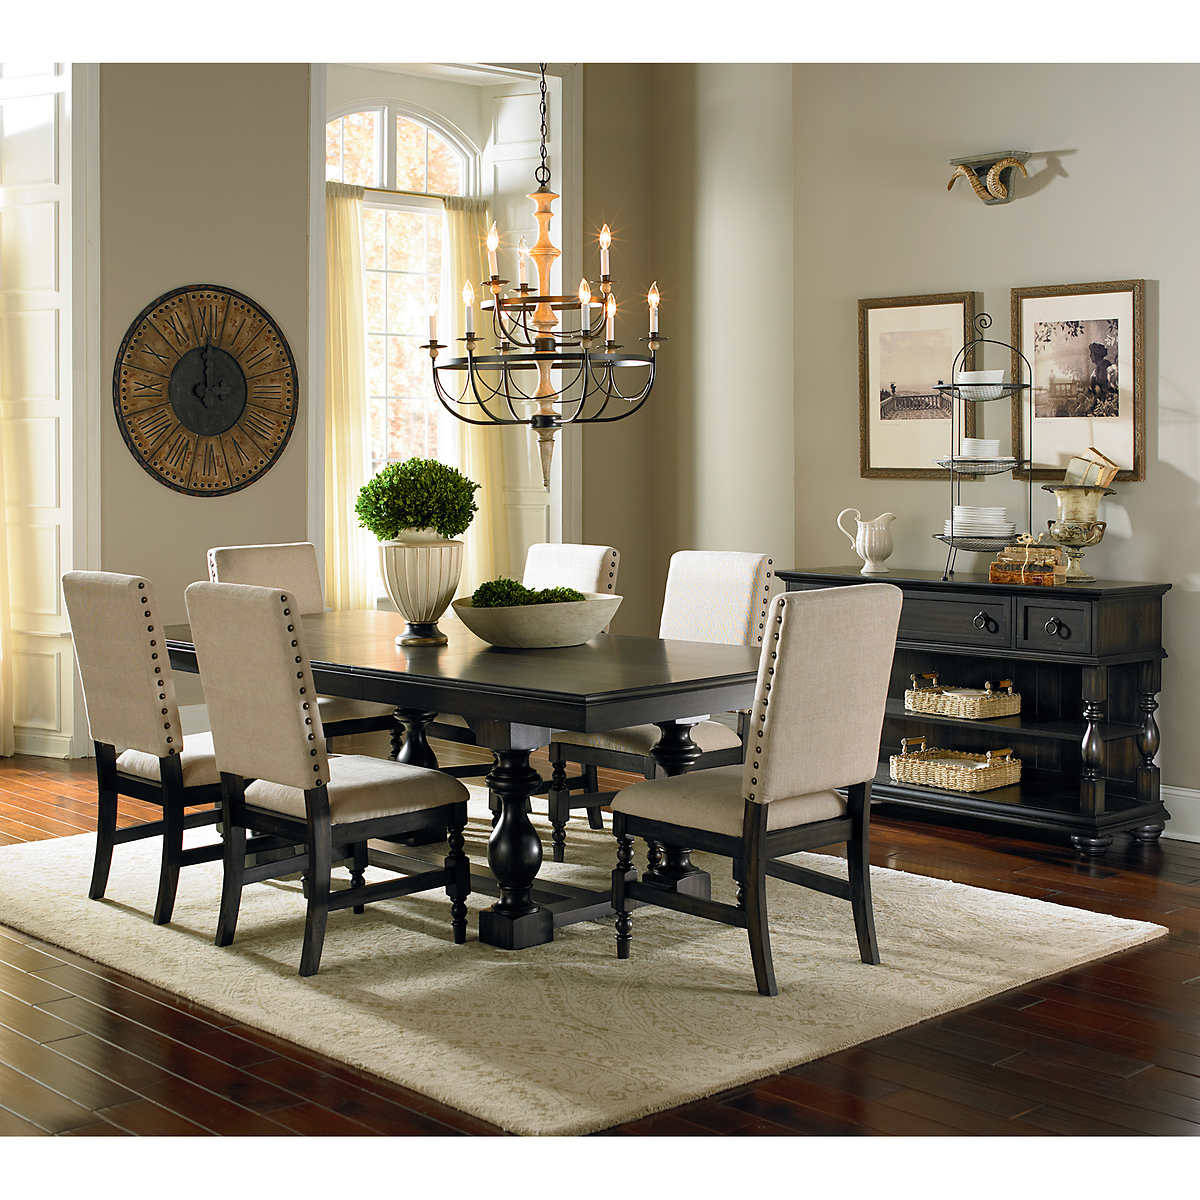 91 Dining Room And Living Room Sets Black Living